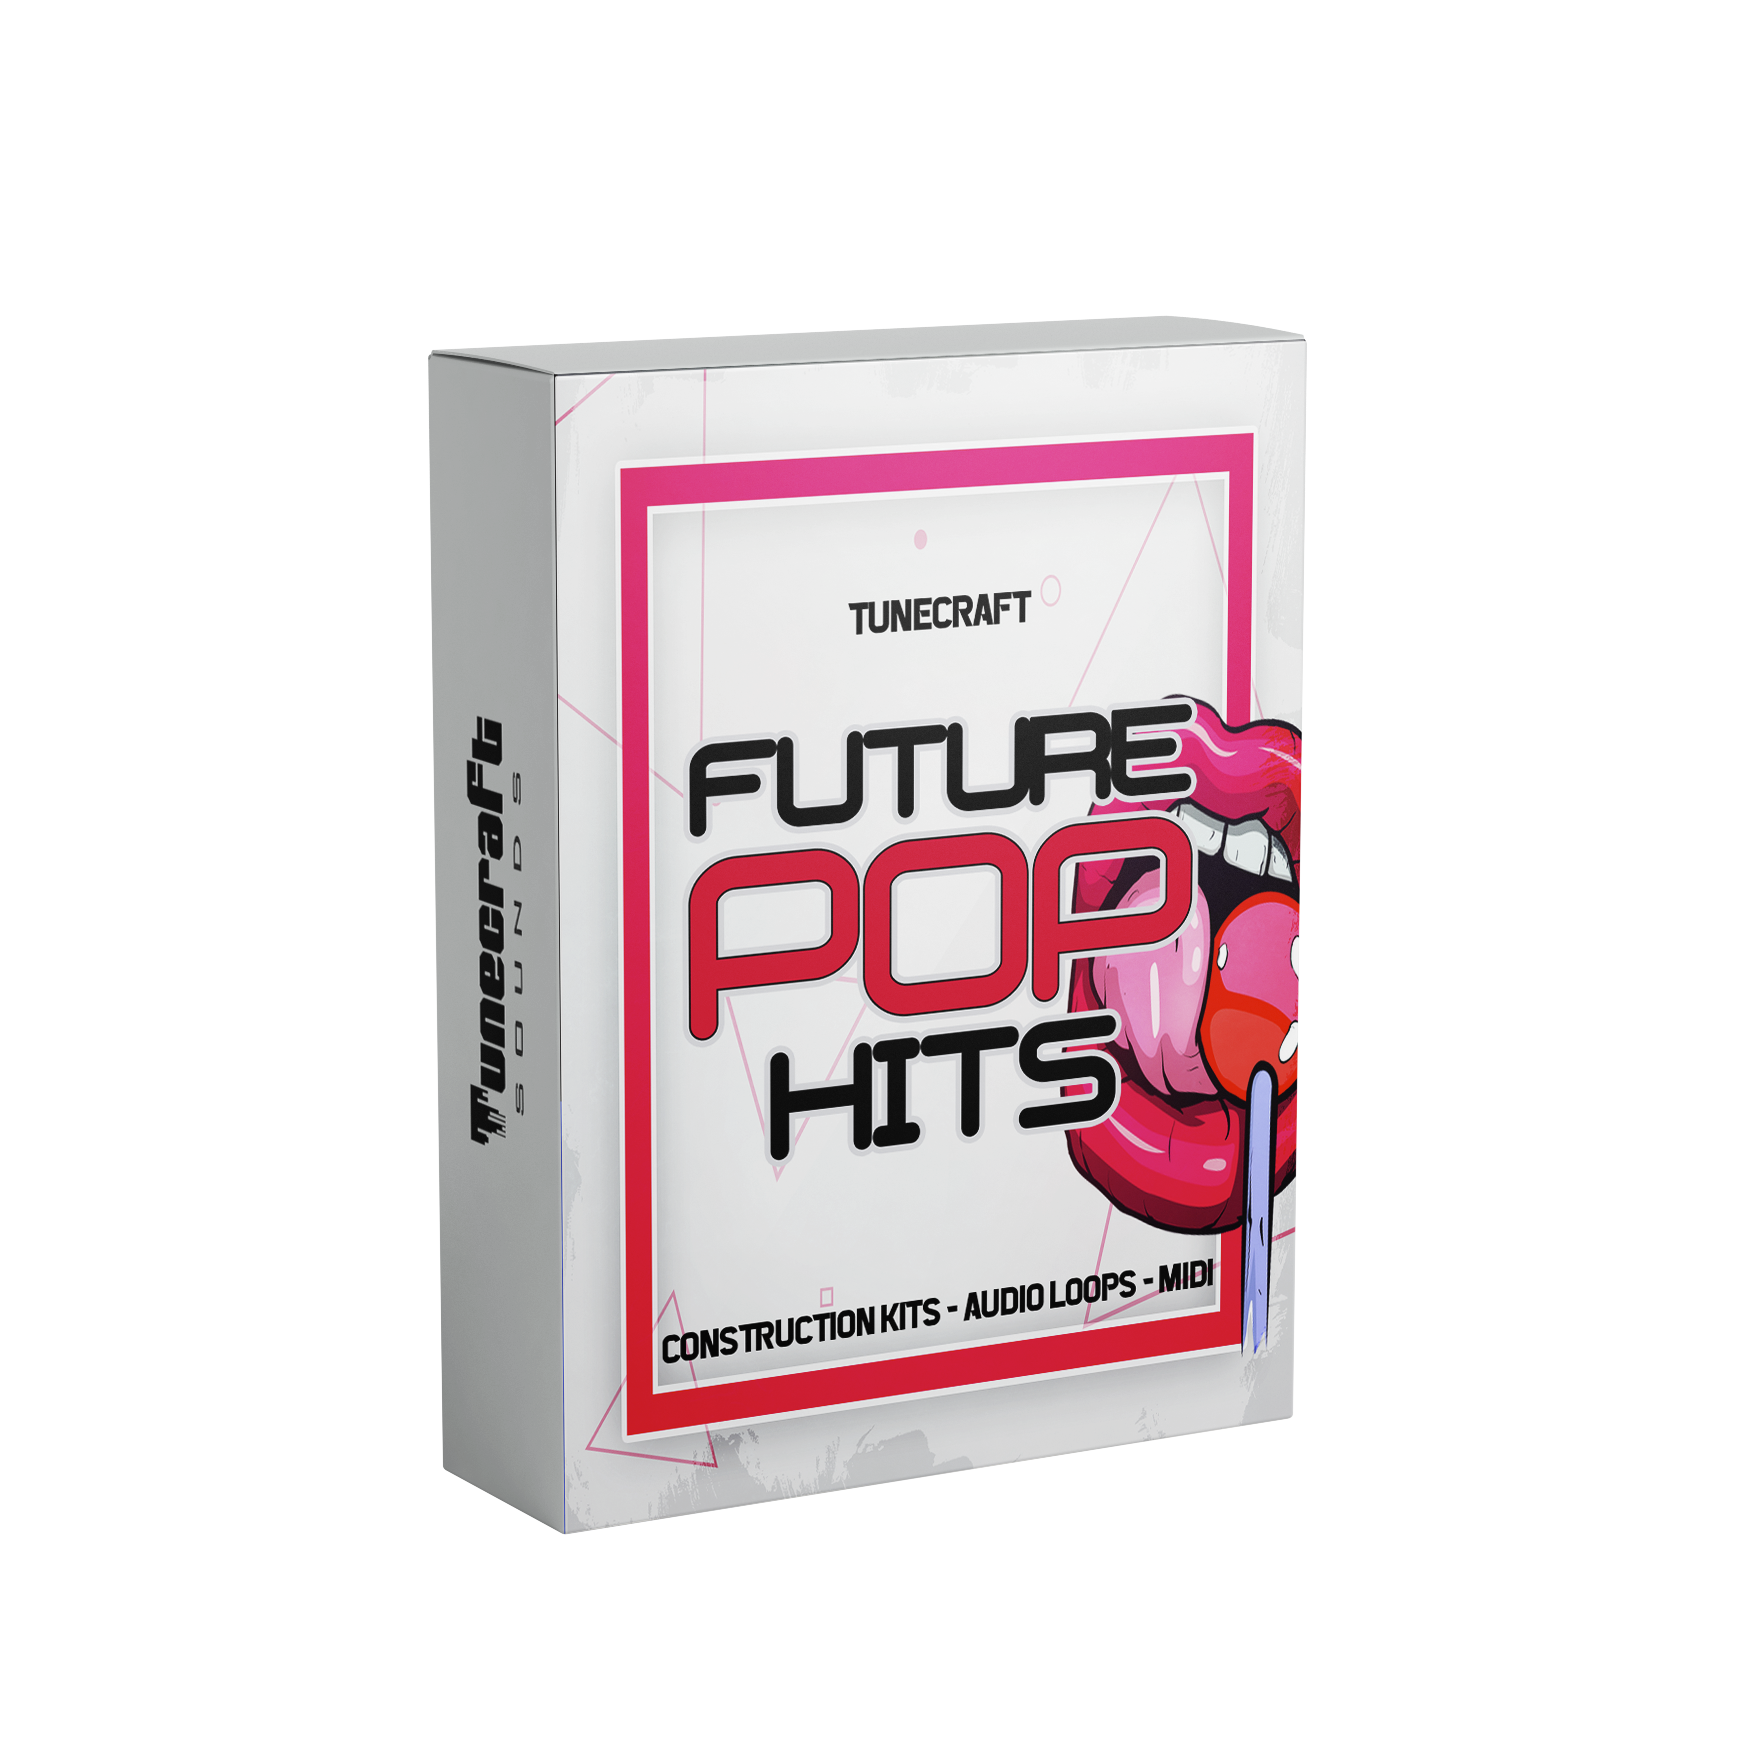 Future-Pop-Hits-3D-Box-NS